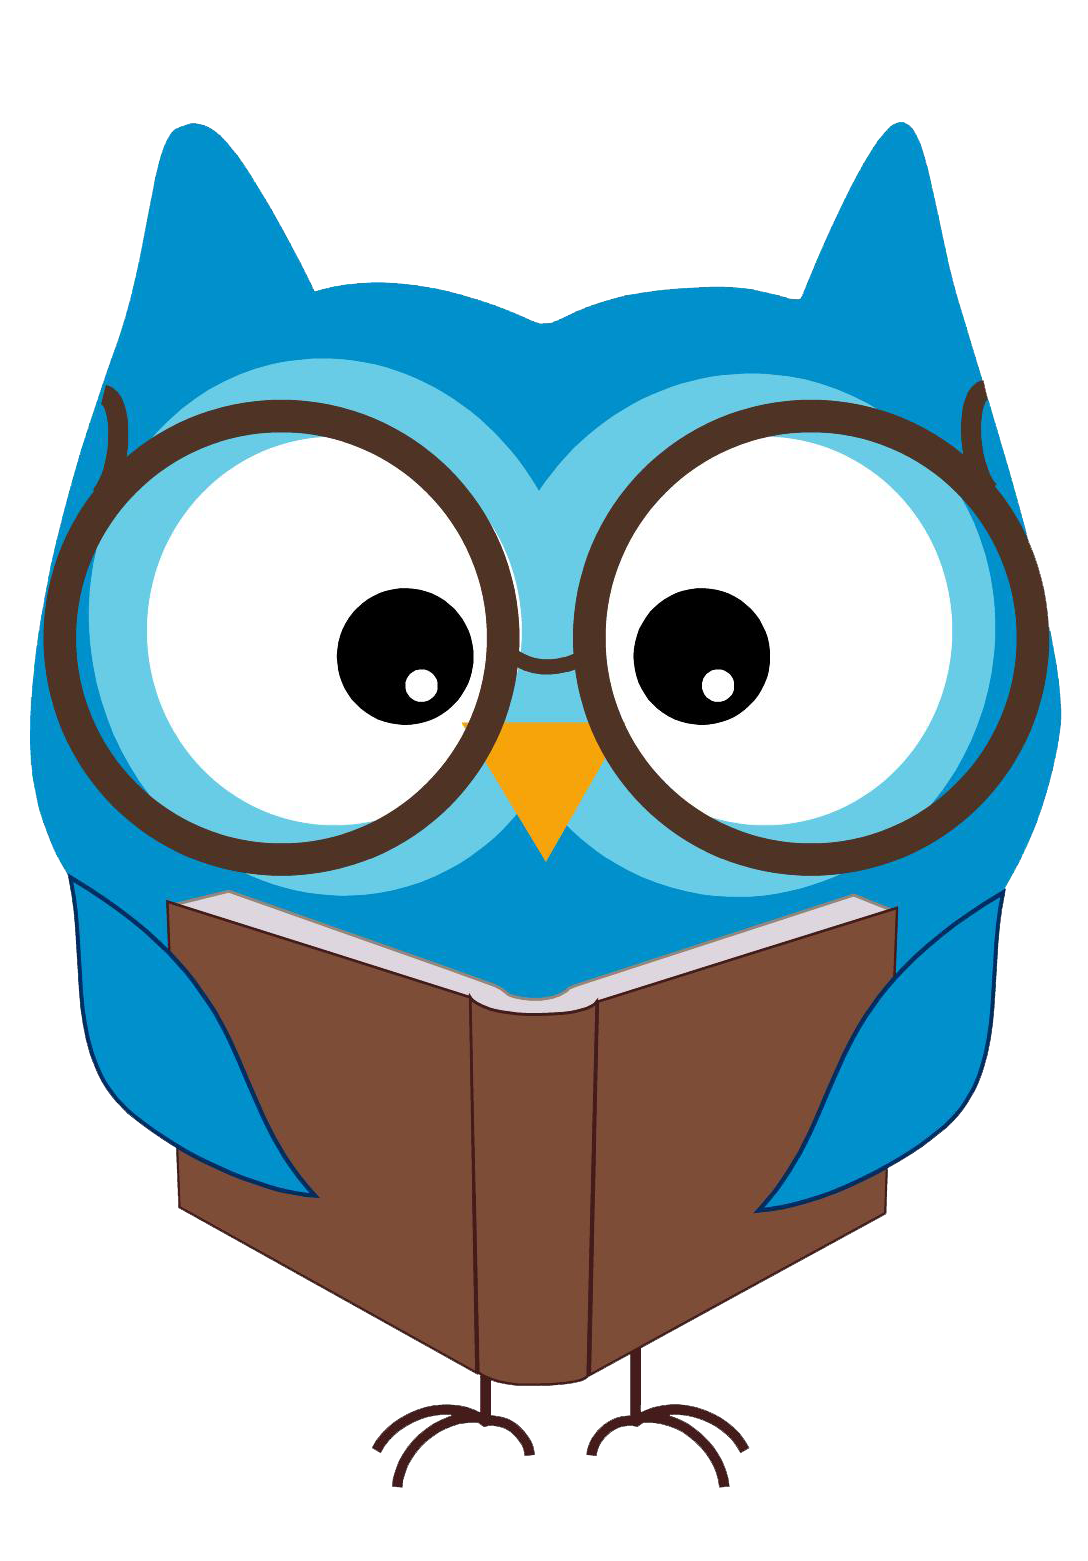 Free Reading Clip Art of Reading owl clip art image for your personal  projects, presentations or web designs. - Animals Reading PNG HD